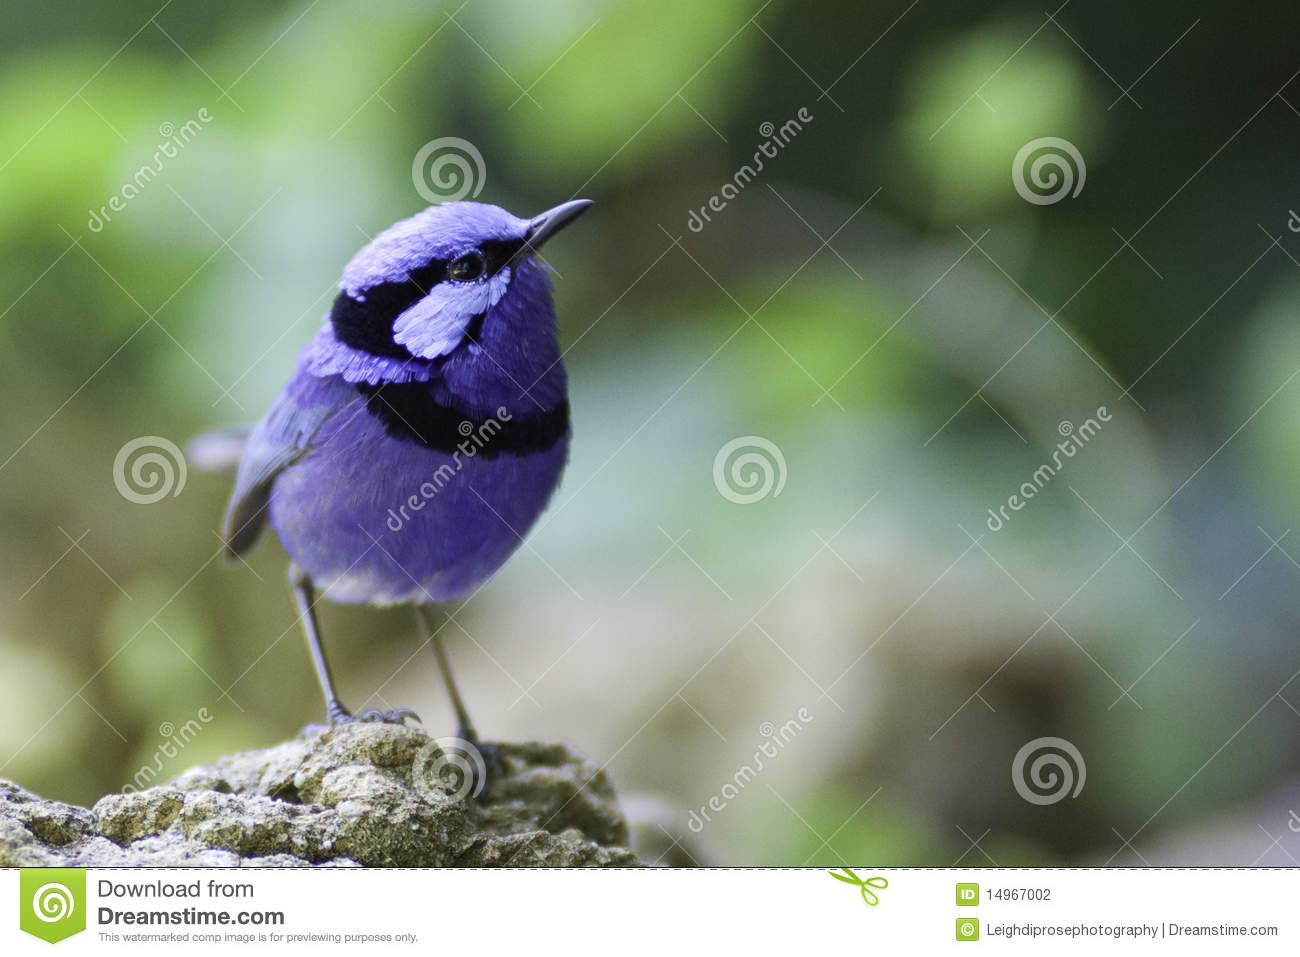 Superb Fairywren clipart #19, Download drawings